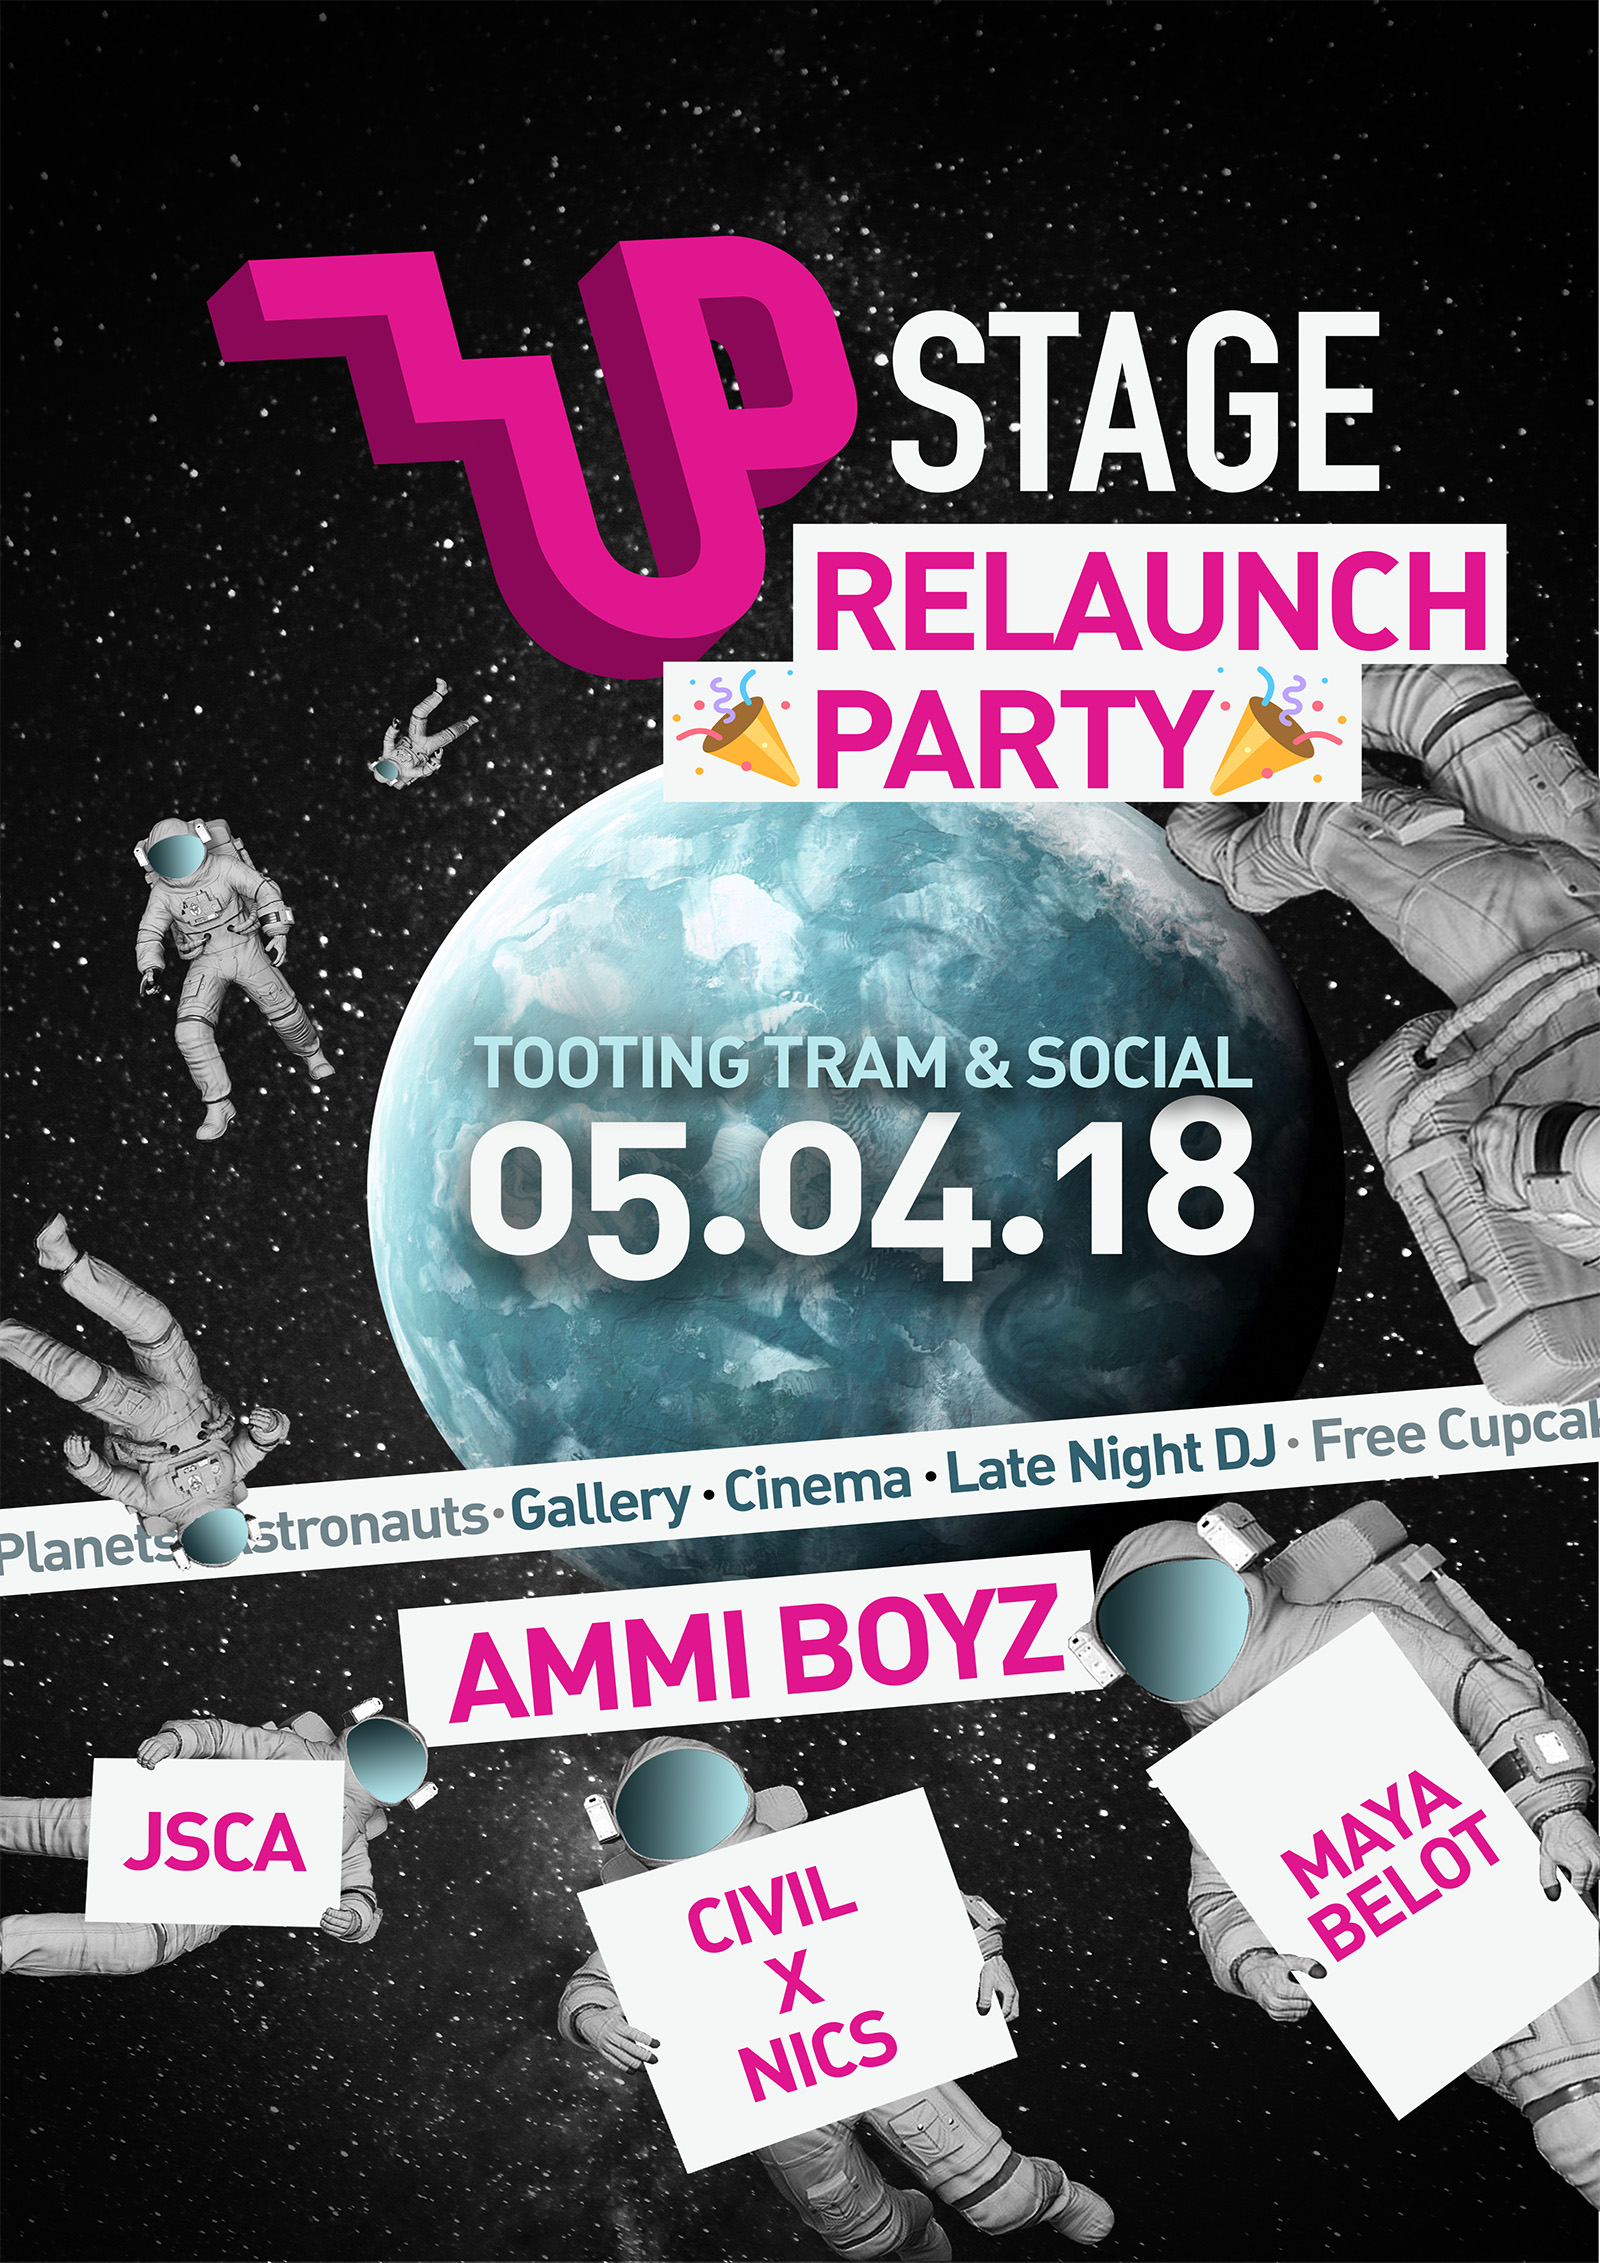 UPSTAGE: Relaunch Party